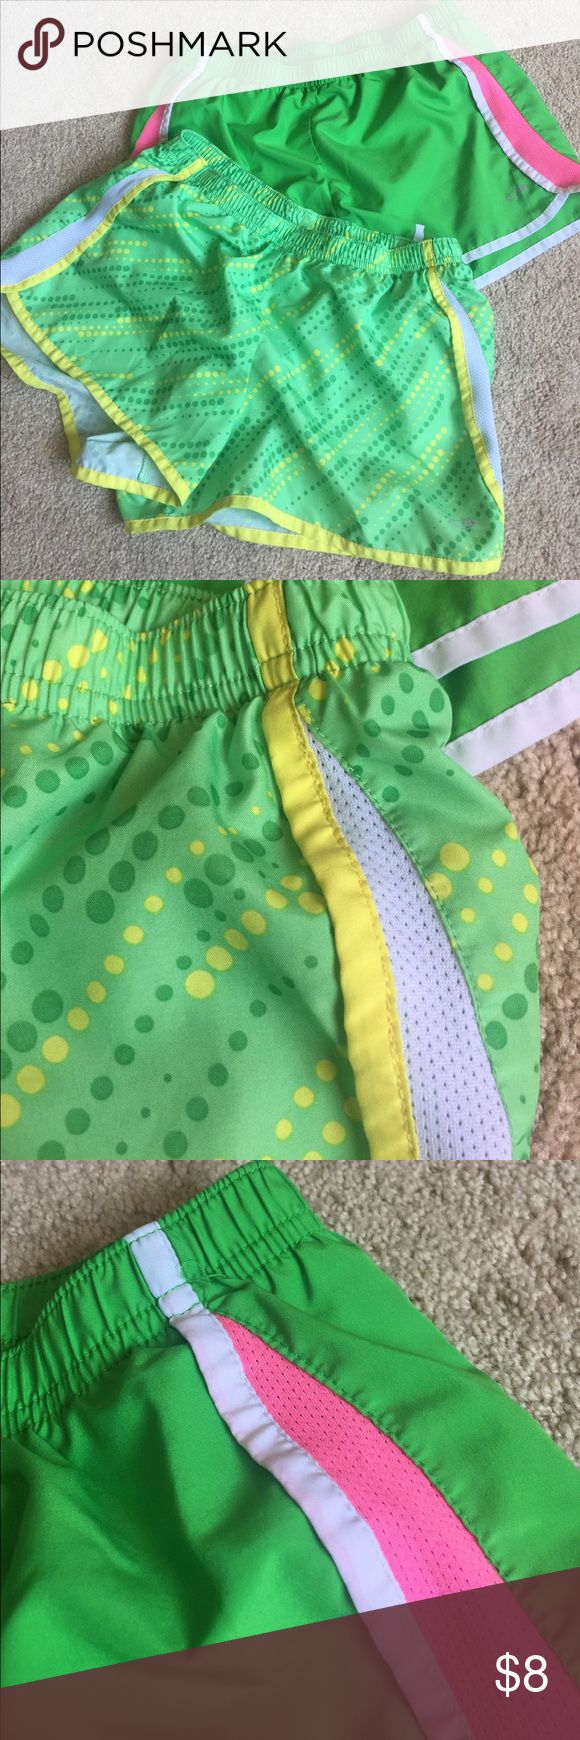 Bundle of 2 pairs green C9 by Champion shorts Two pairs of C9 by Champion running shorts in size Girls XL (14/16). Both in green, one with yellow and dark green dots, white breathable sides, and yellow trim. Second with pink breathable sides and white trim. Price is for the bundle of two pairs! In excellent pre-owned condition.  ***BUNDLE with another item in my closet and pay just ONE shipping fee and save 10% too!!*** Champion Bottoms Shorts